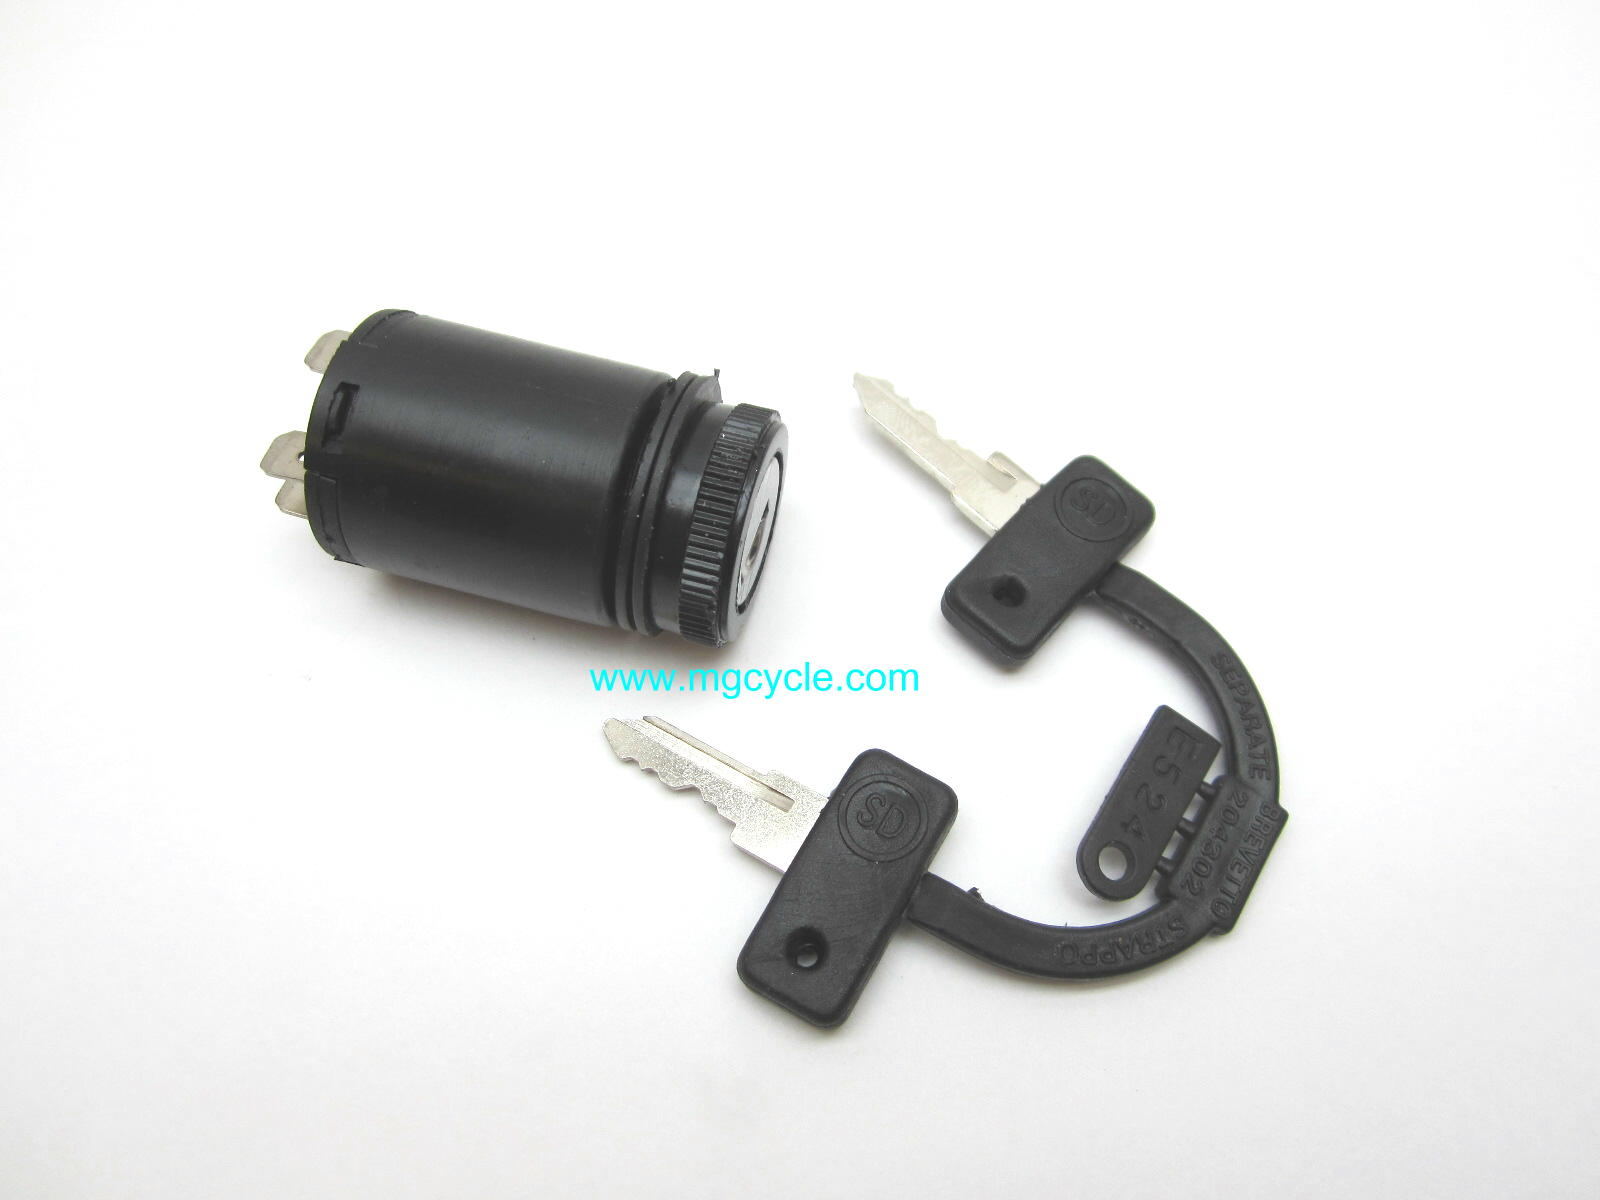 SD ignition switch, 2 keys T T3 LM1/2/3/4/5 Convert G5 SP Cal2/3